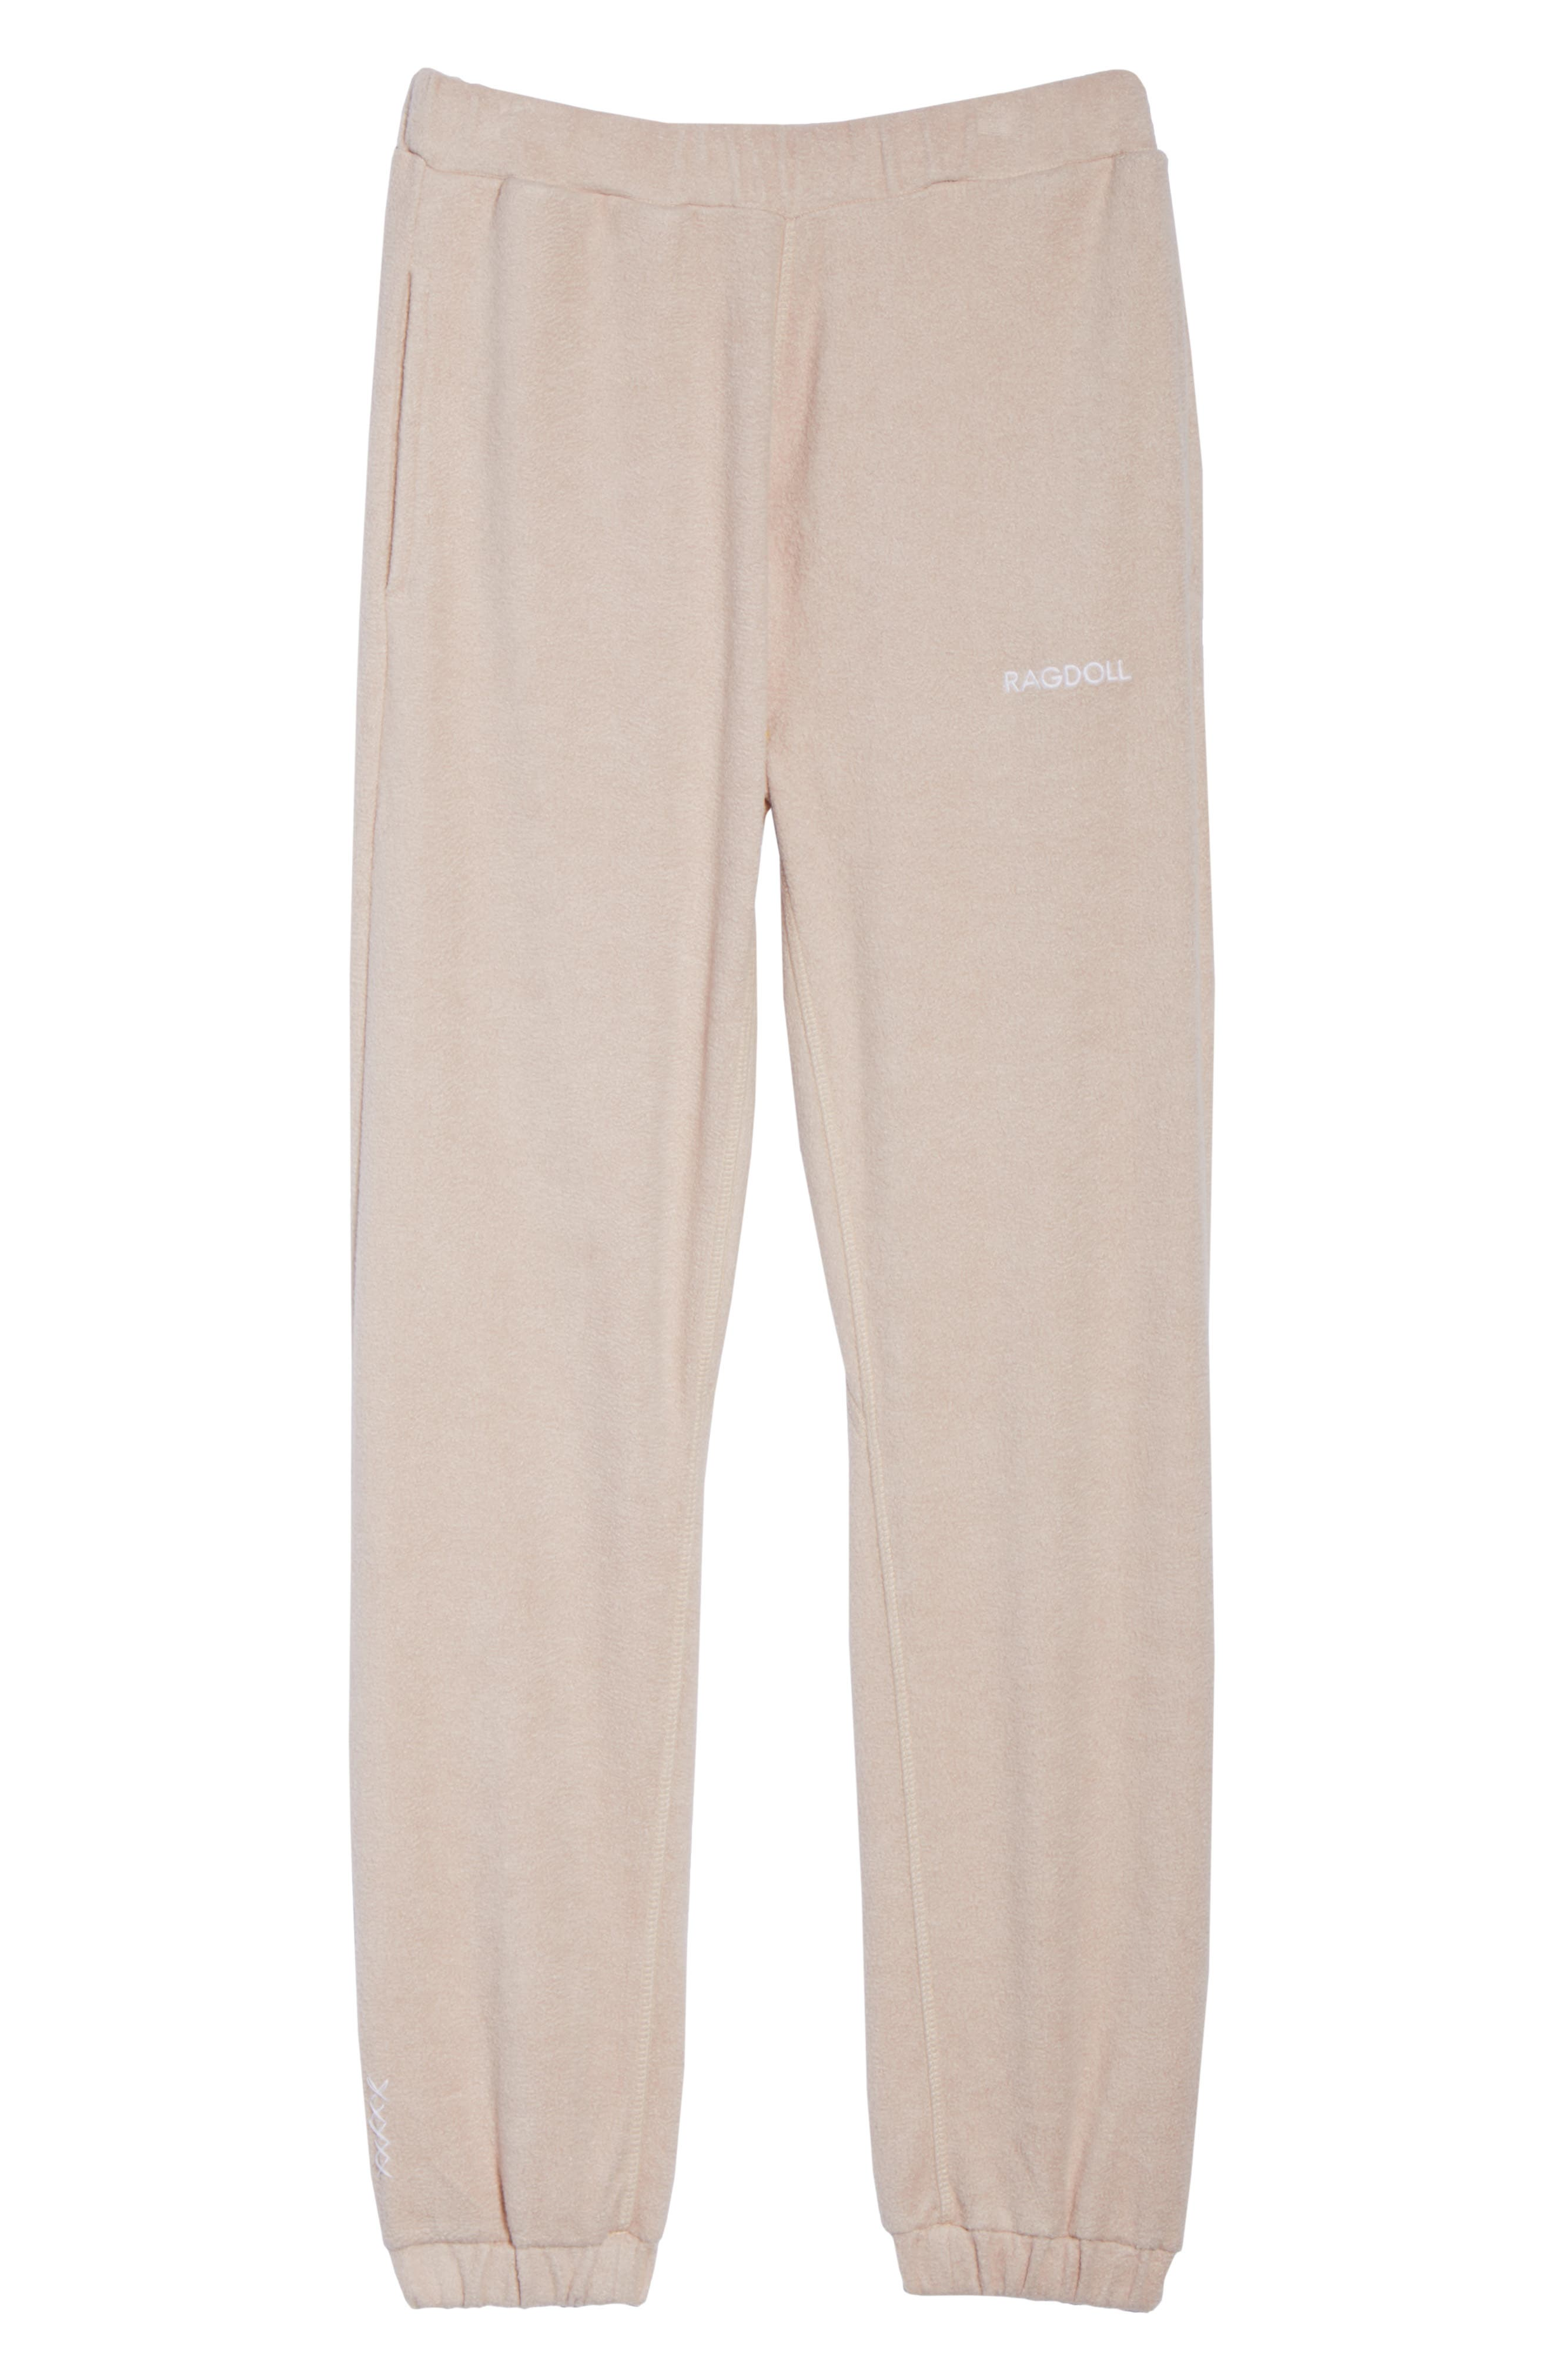 Lounge Pant,                             Alternate thumbnail 5, color,                             Dusty Pink